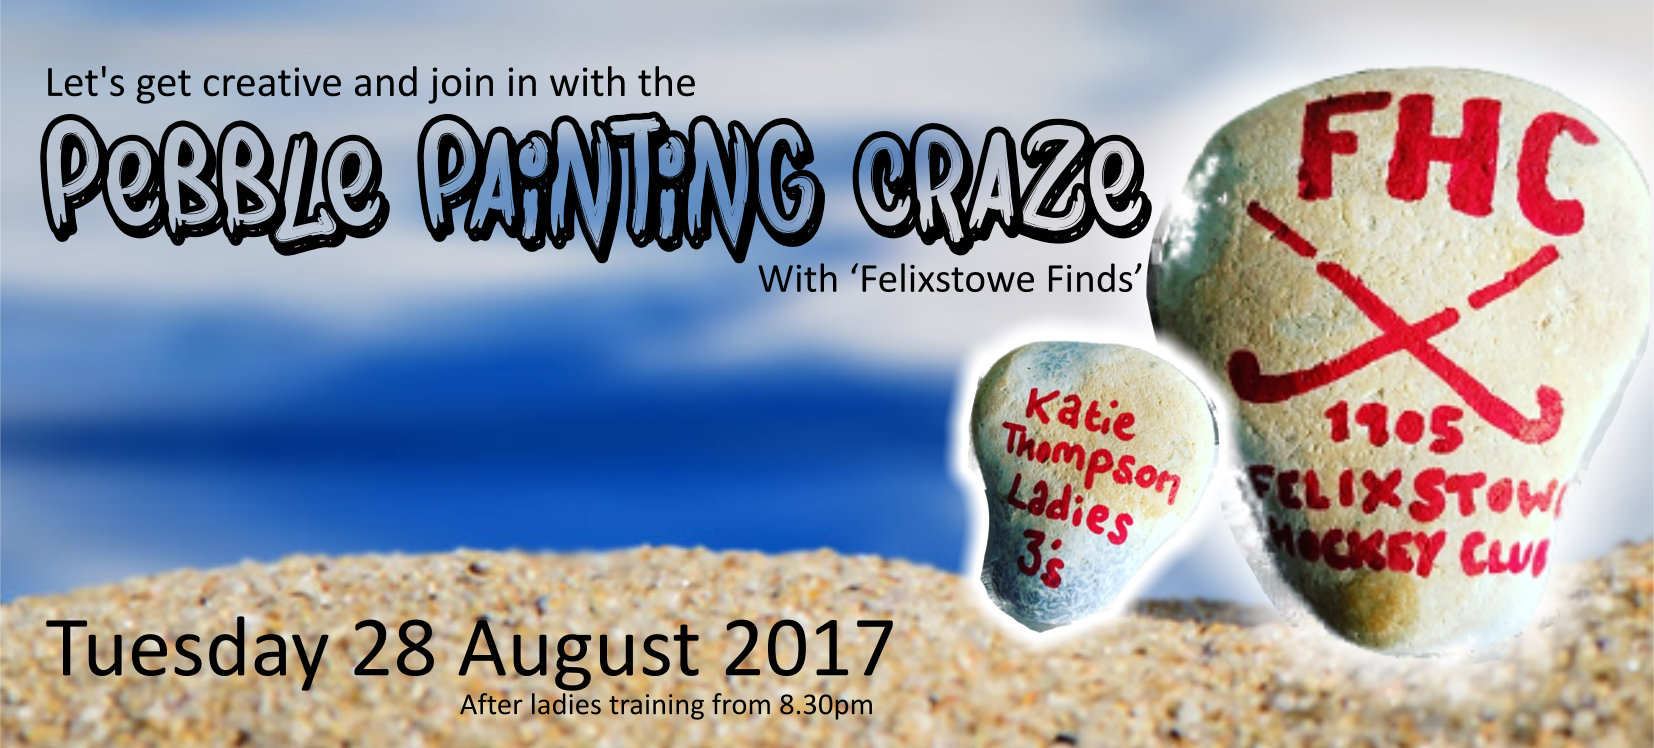 Pebble_craze_2017